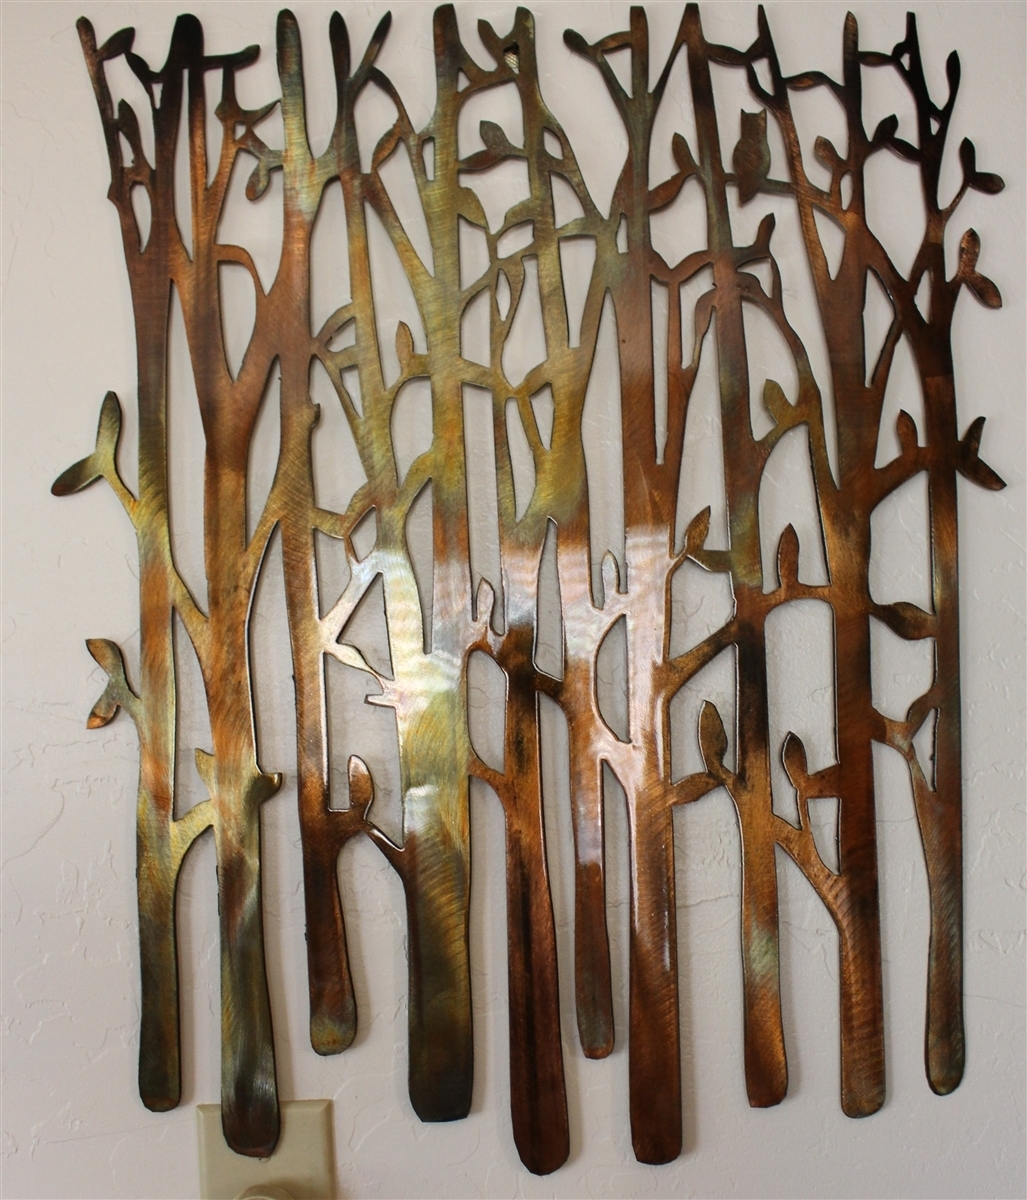 Birch Tree, Birch Tree Metal Art, Bamboo, Bird In The Trees, Bird Throughout Most Popular Metal Wall Accents (View 1 of 15)